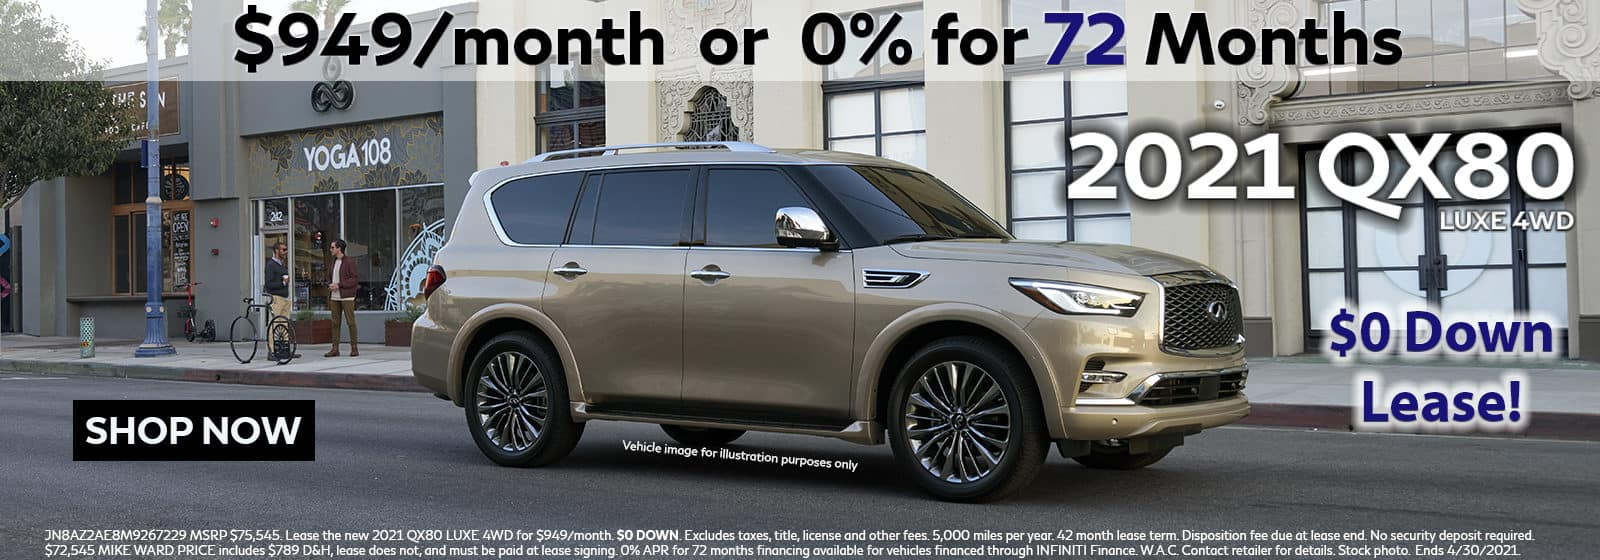 2021 INFINITI QX80 Lease or Buy Offer